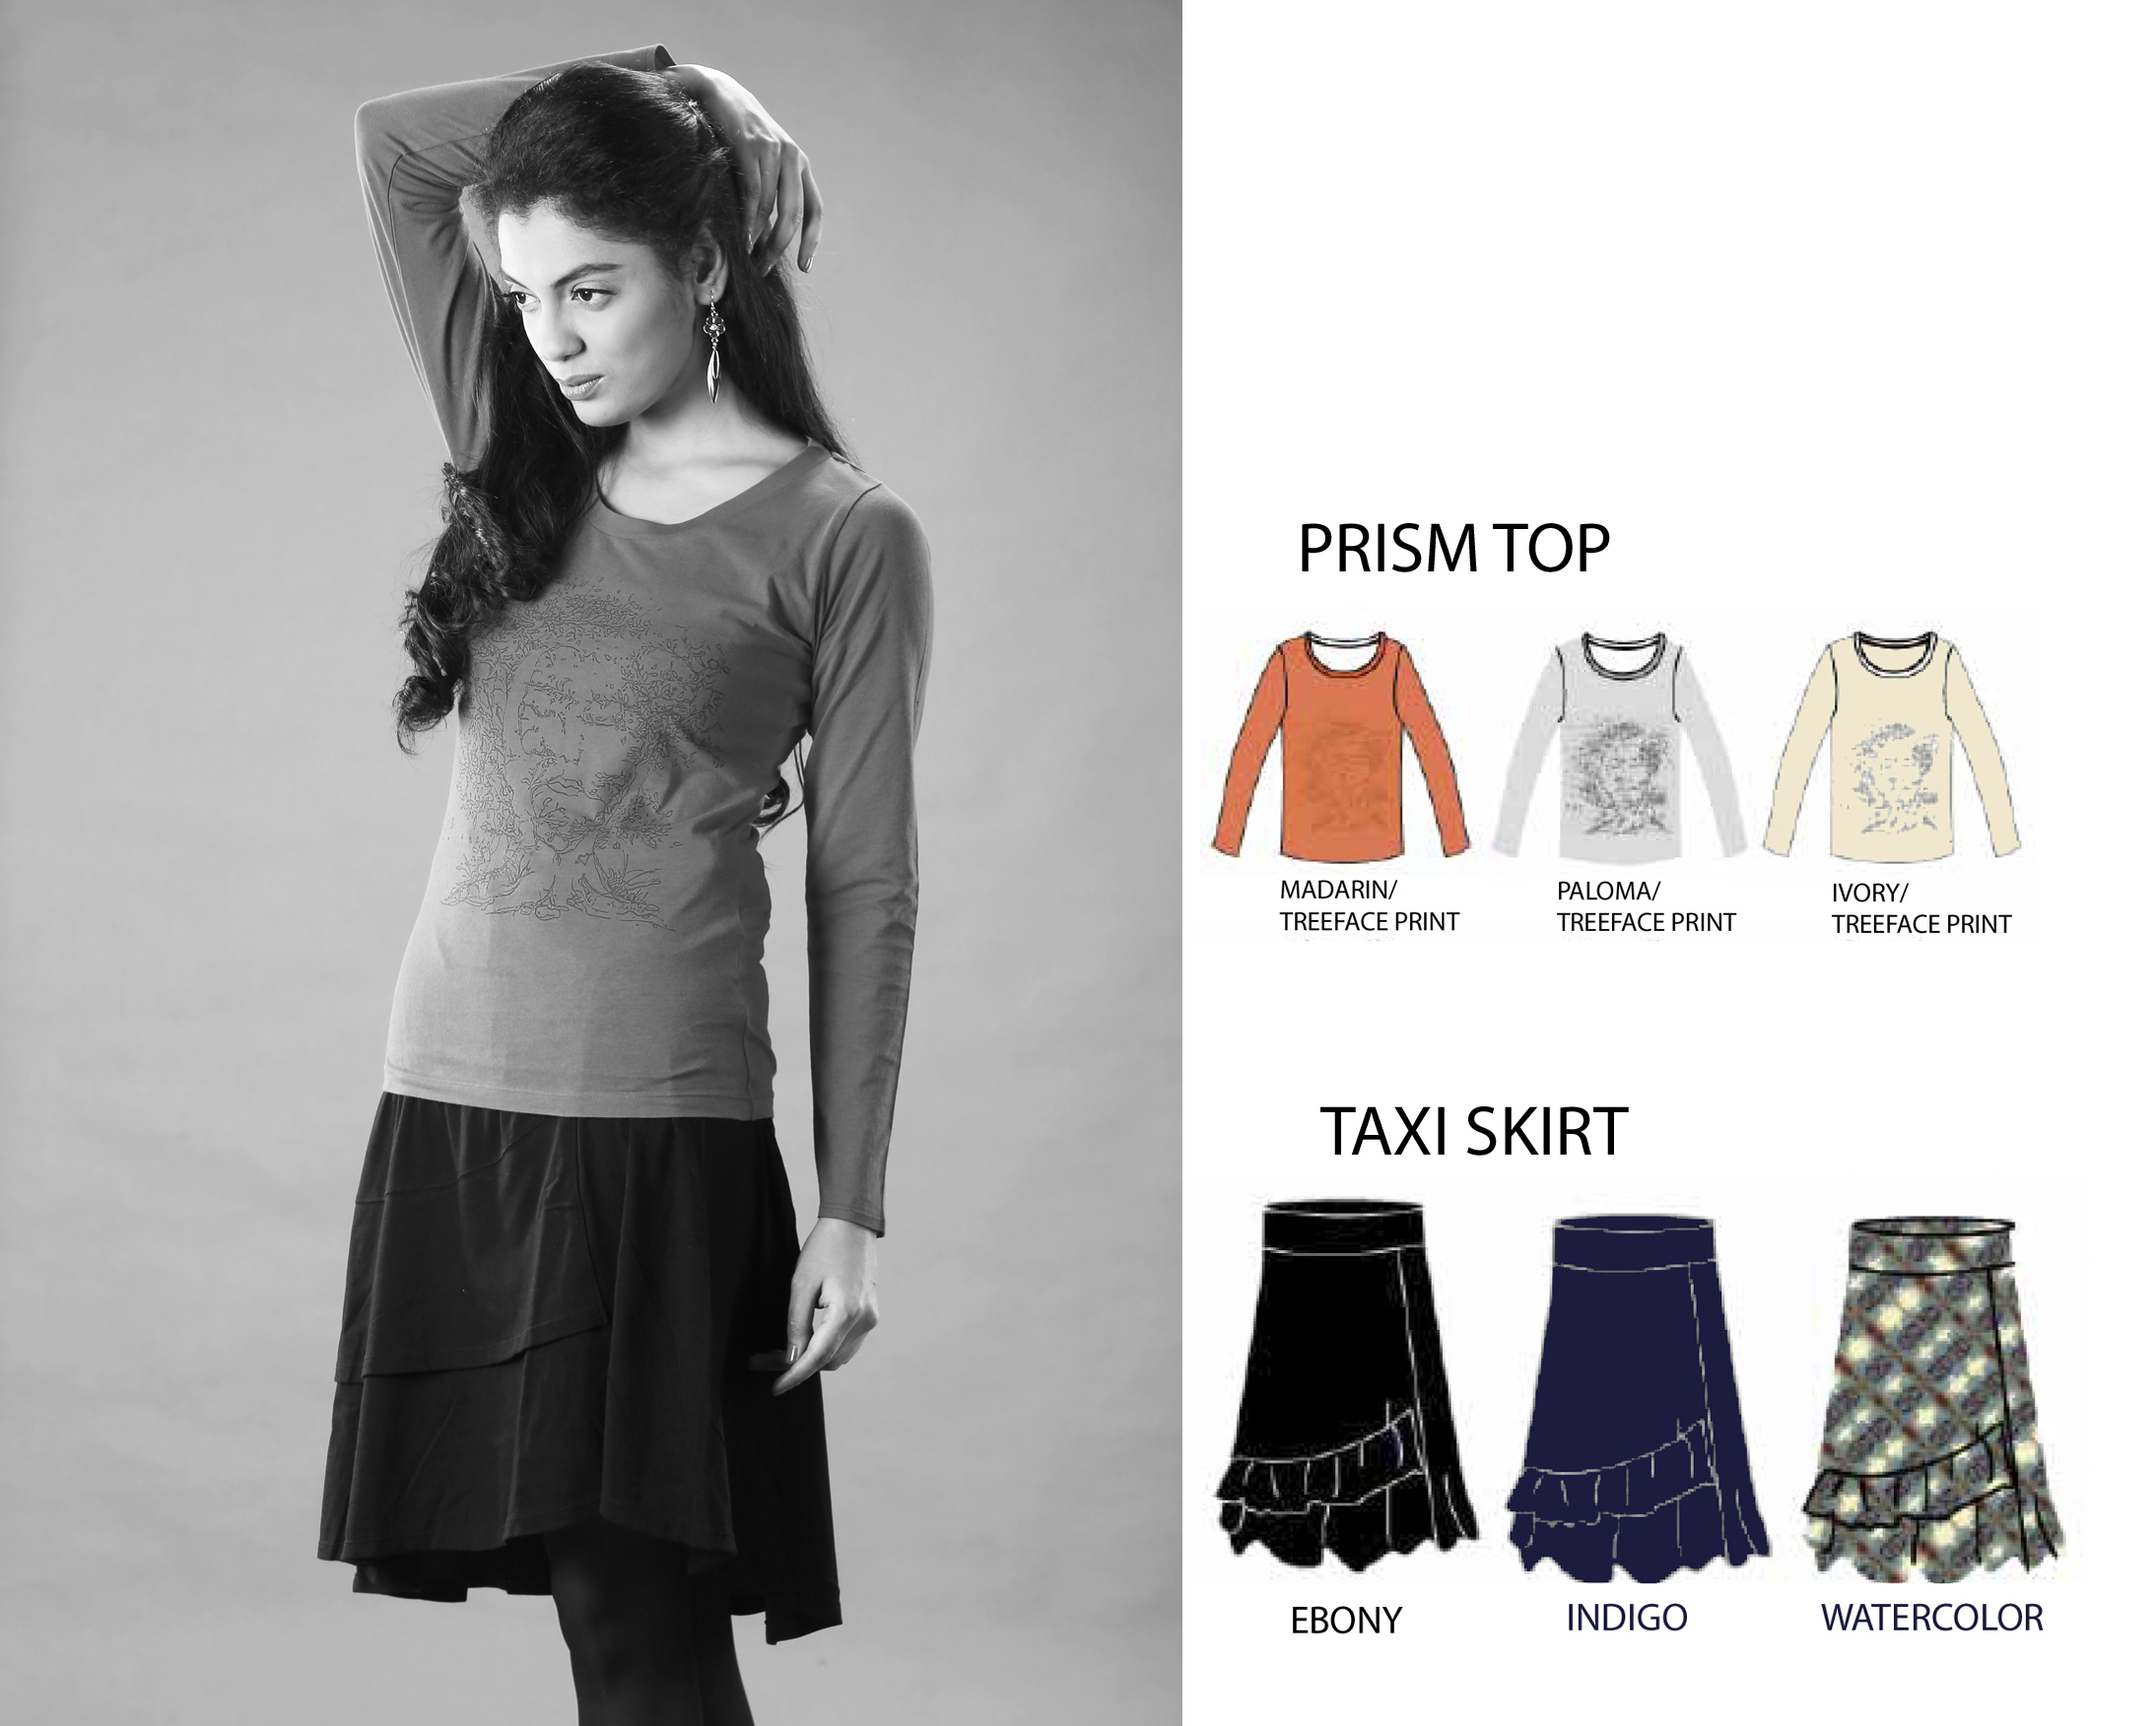 Prisme Top & Taxi Skirt